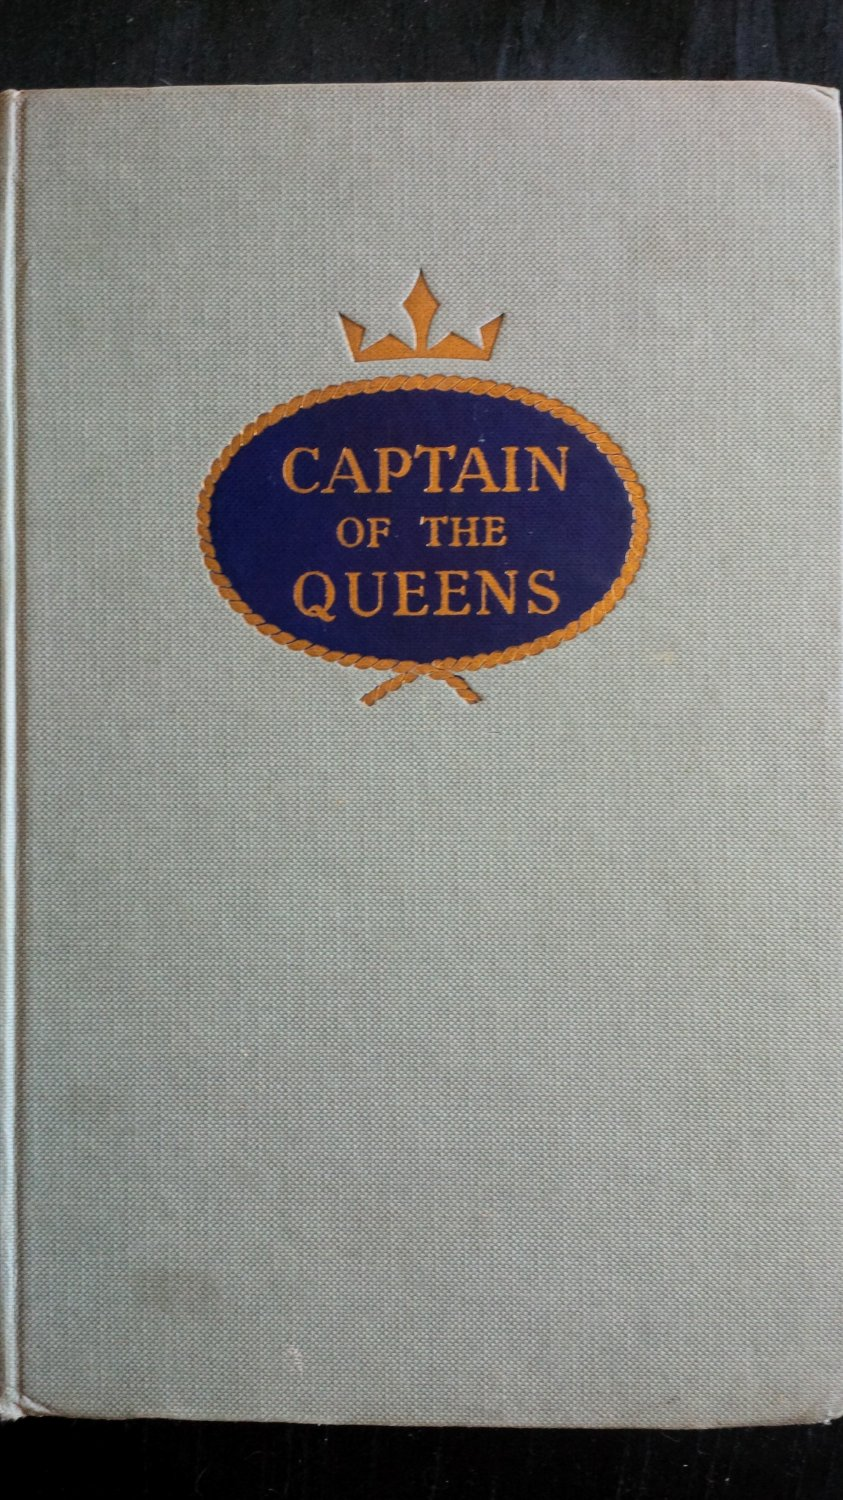 Captain of the Queens By: Harry Grattidge and Richard Collier (Hardover)